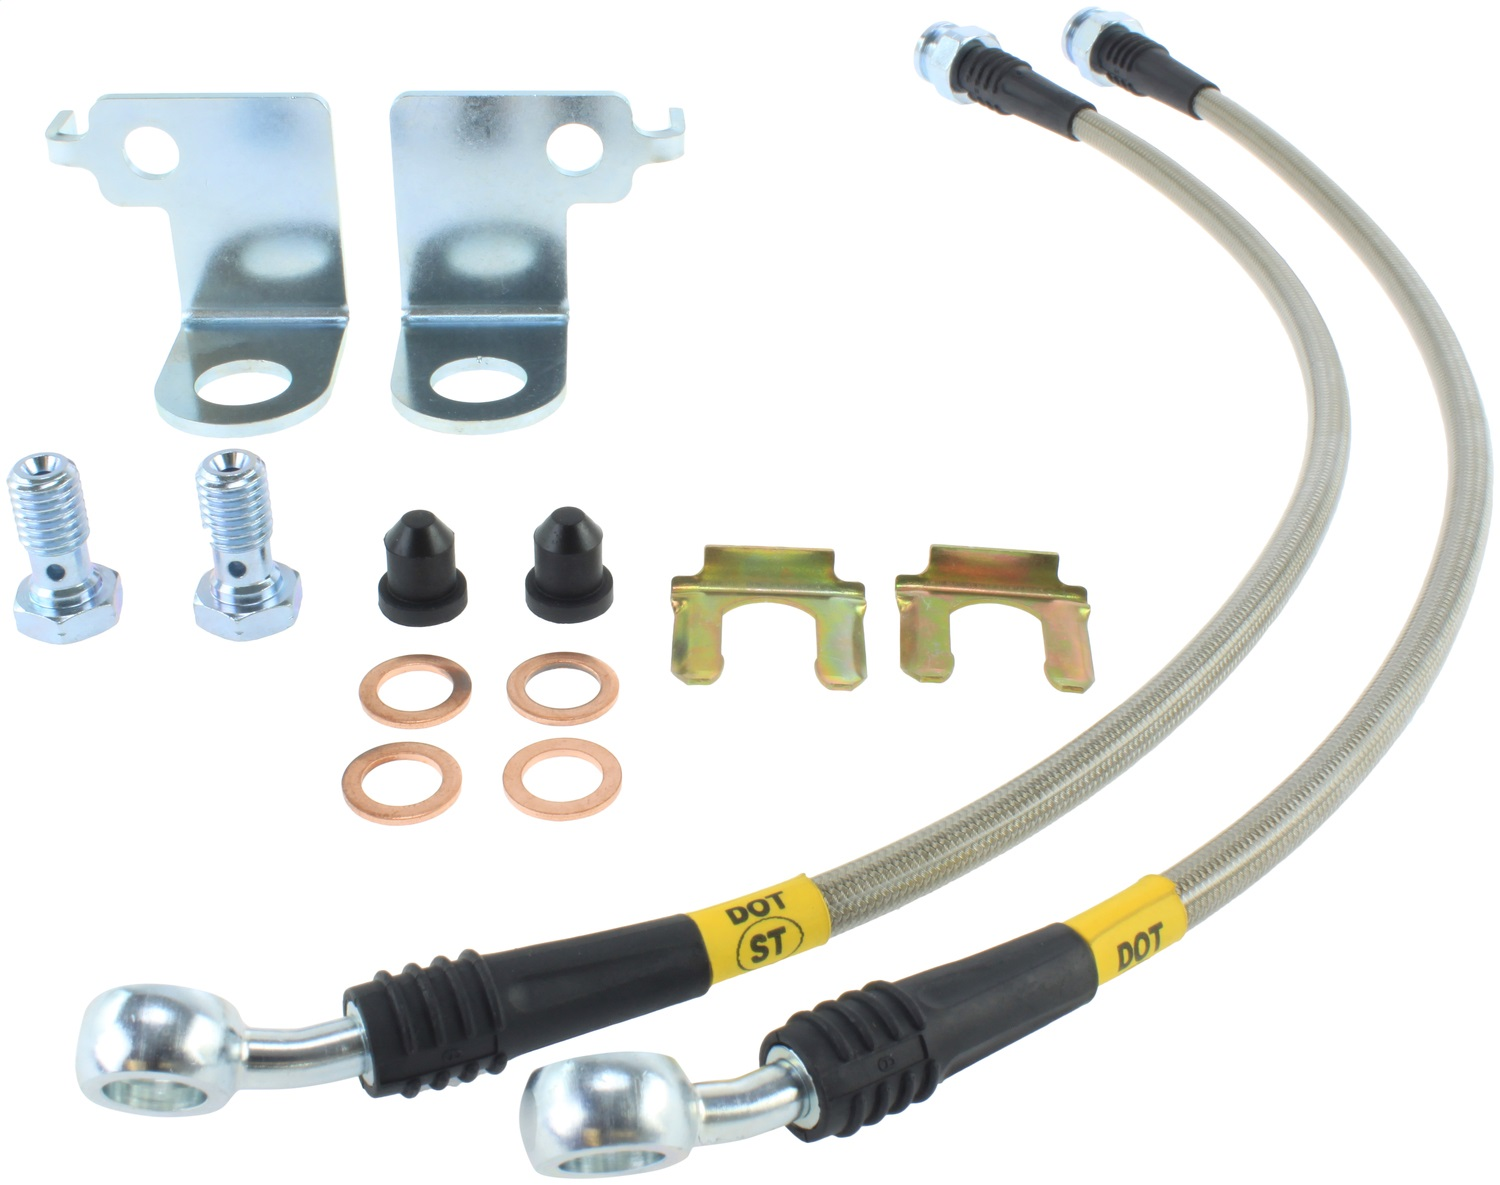 StopTech 950.61023 Stainless Steel Braided Brake Hose Kit Fits 15-18 Mustang